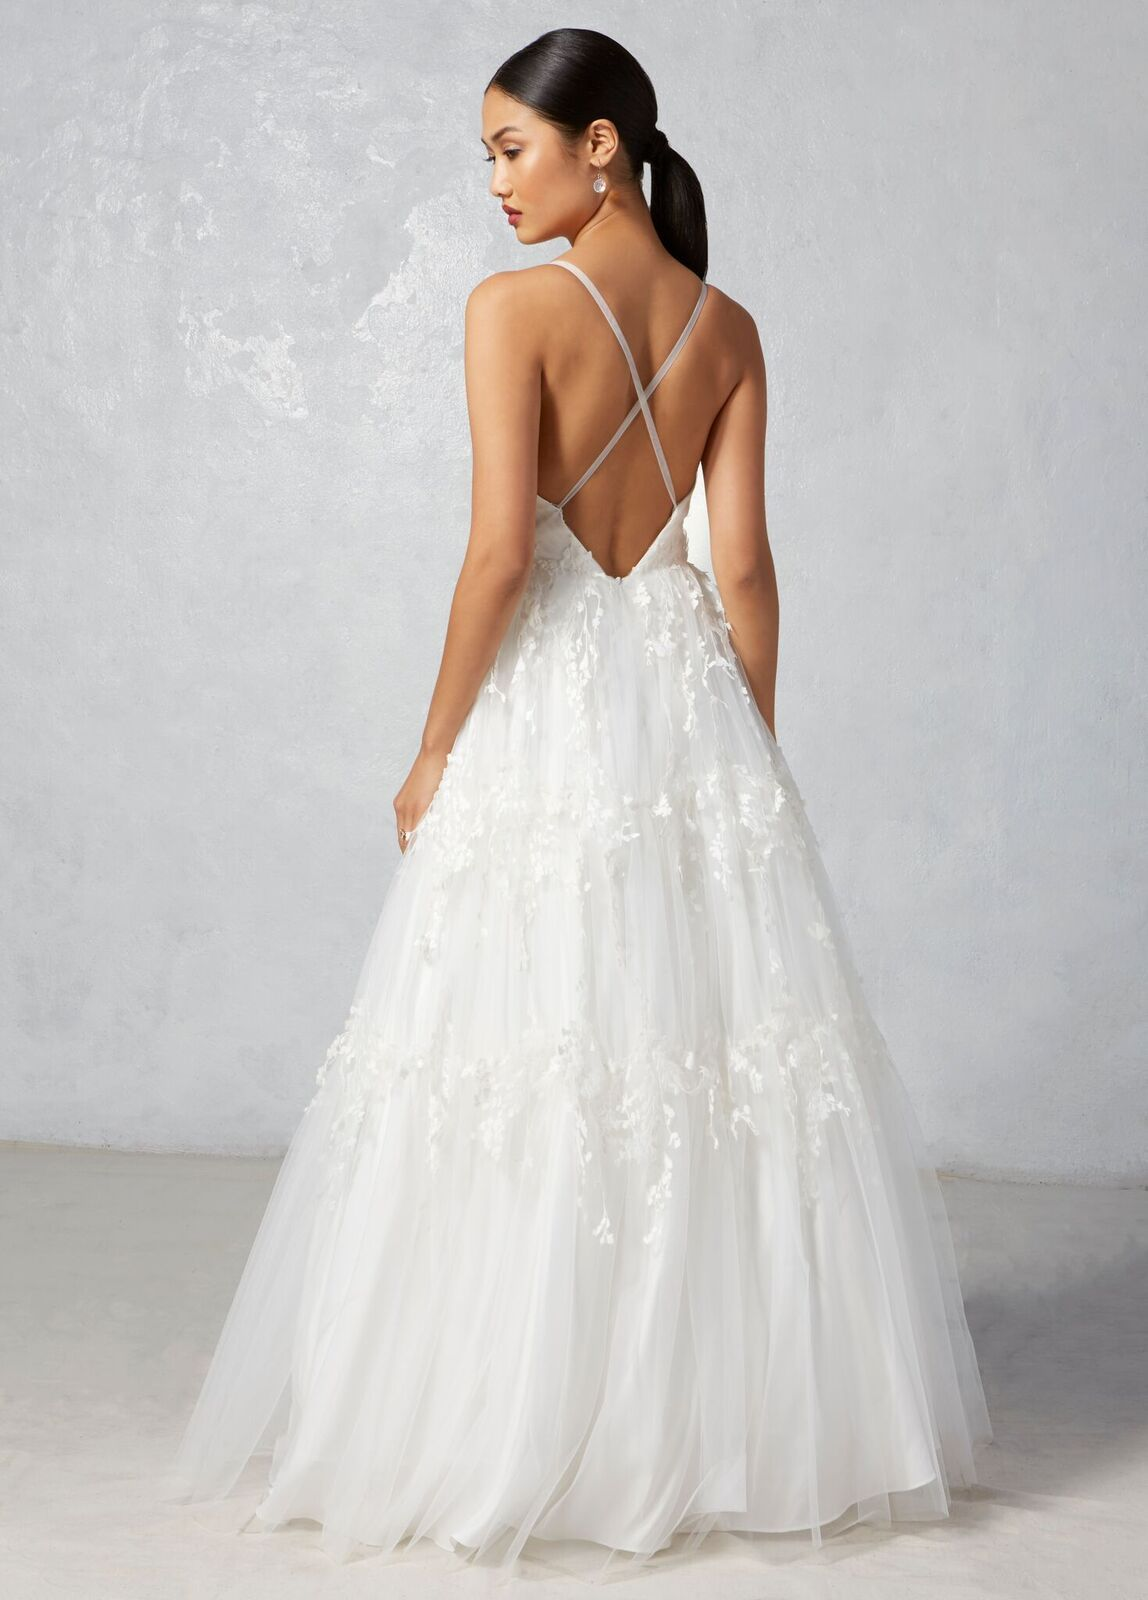 Dawn Ivy Aster Fall 2017 Collection Lace Criss Cross Back Wedding